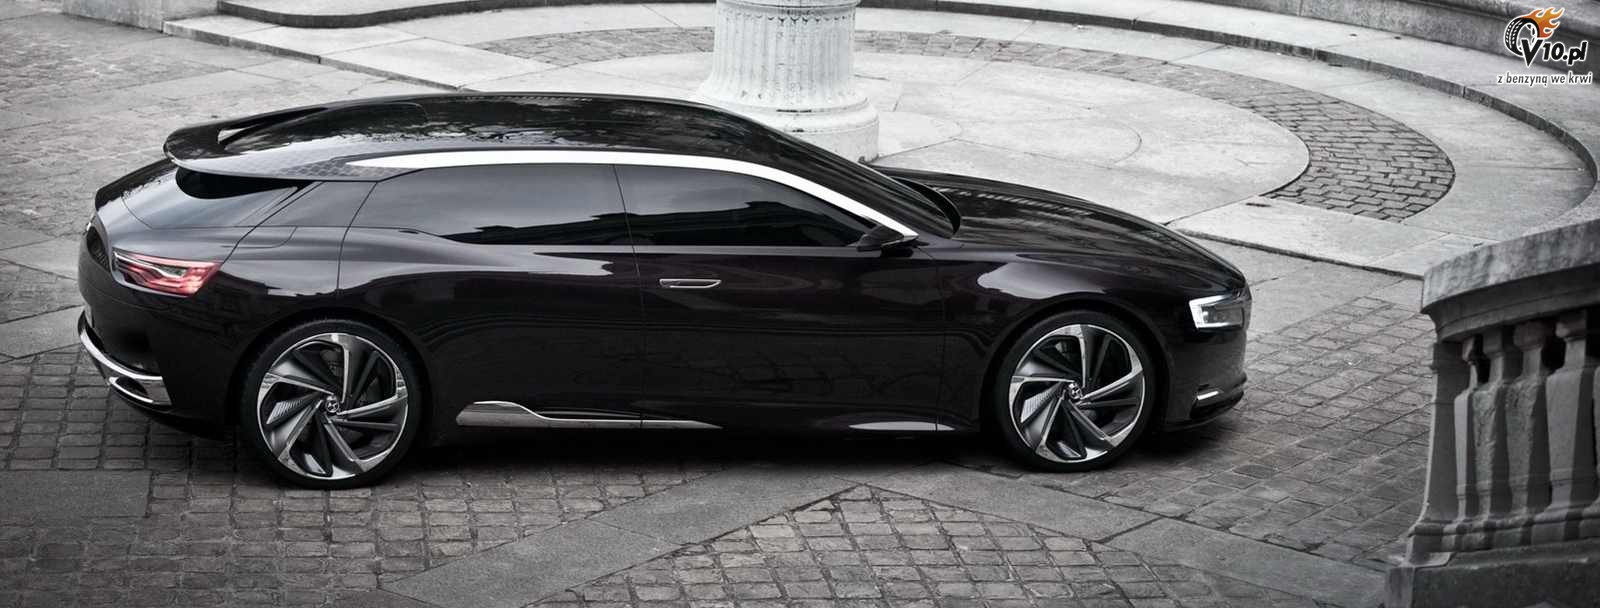 2019 Kia Ray photo - 2